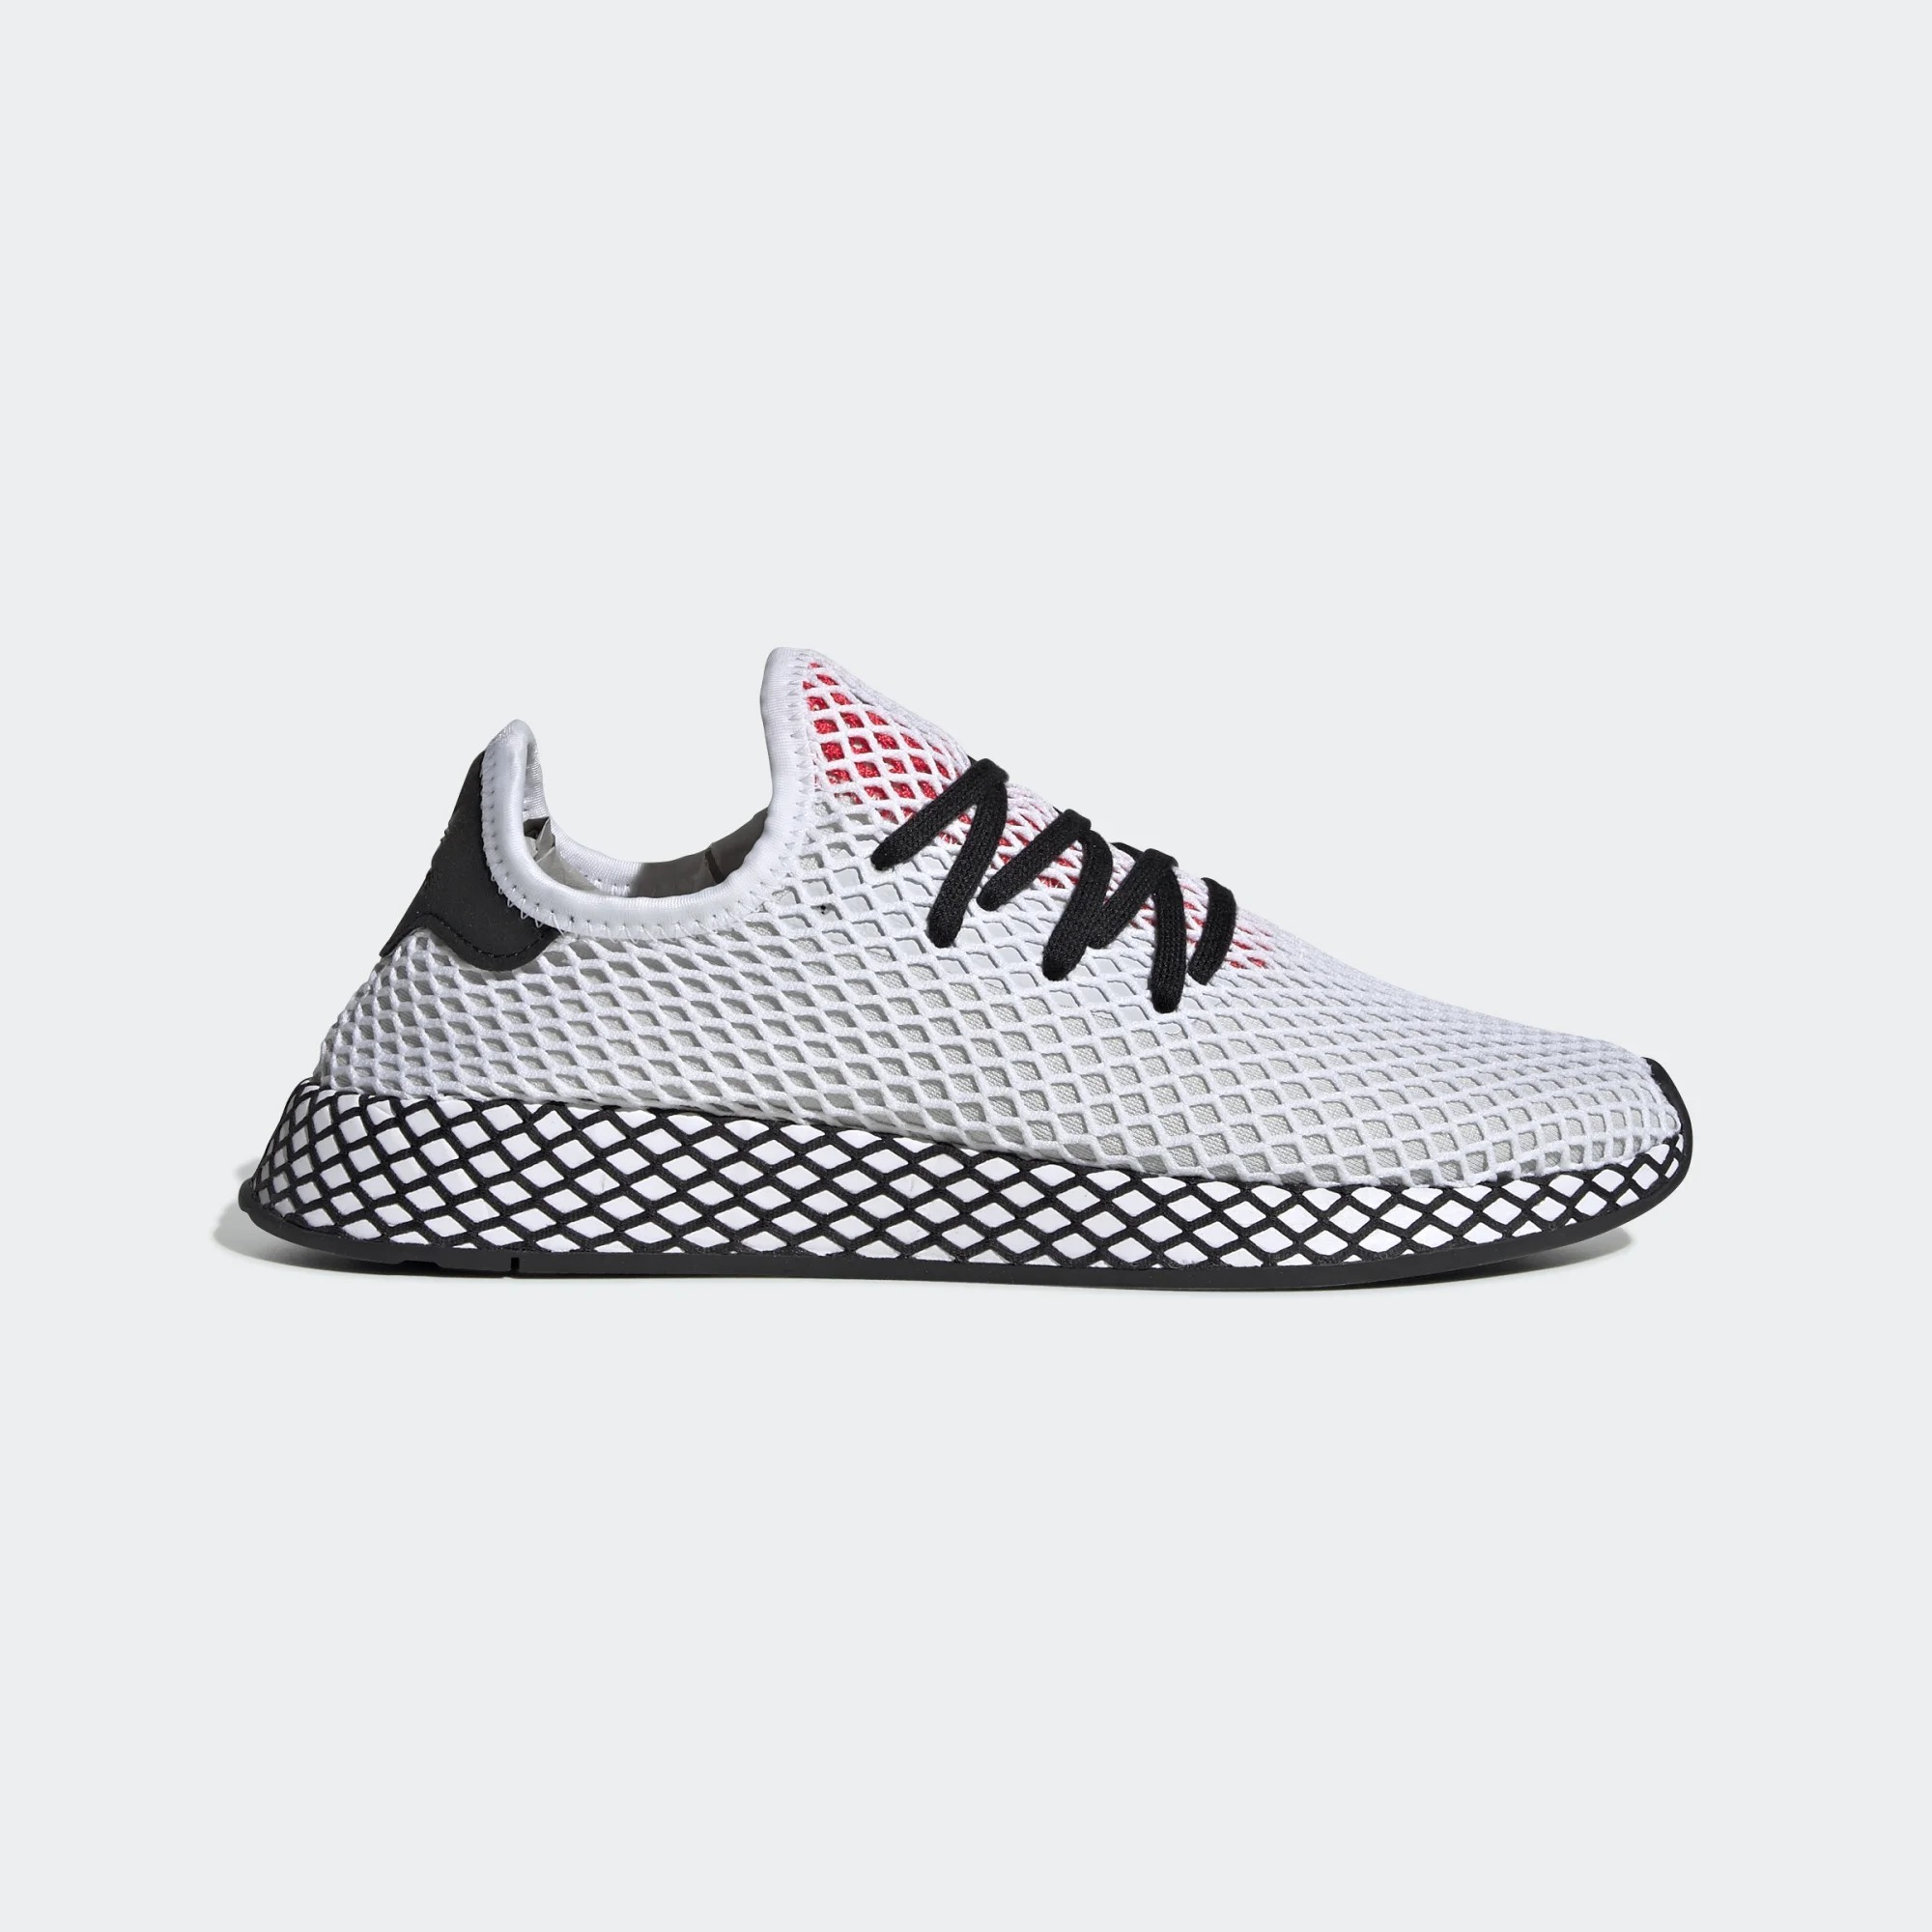 adidas Originals Deerupt Runner White Sneakers DB2686